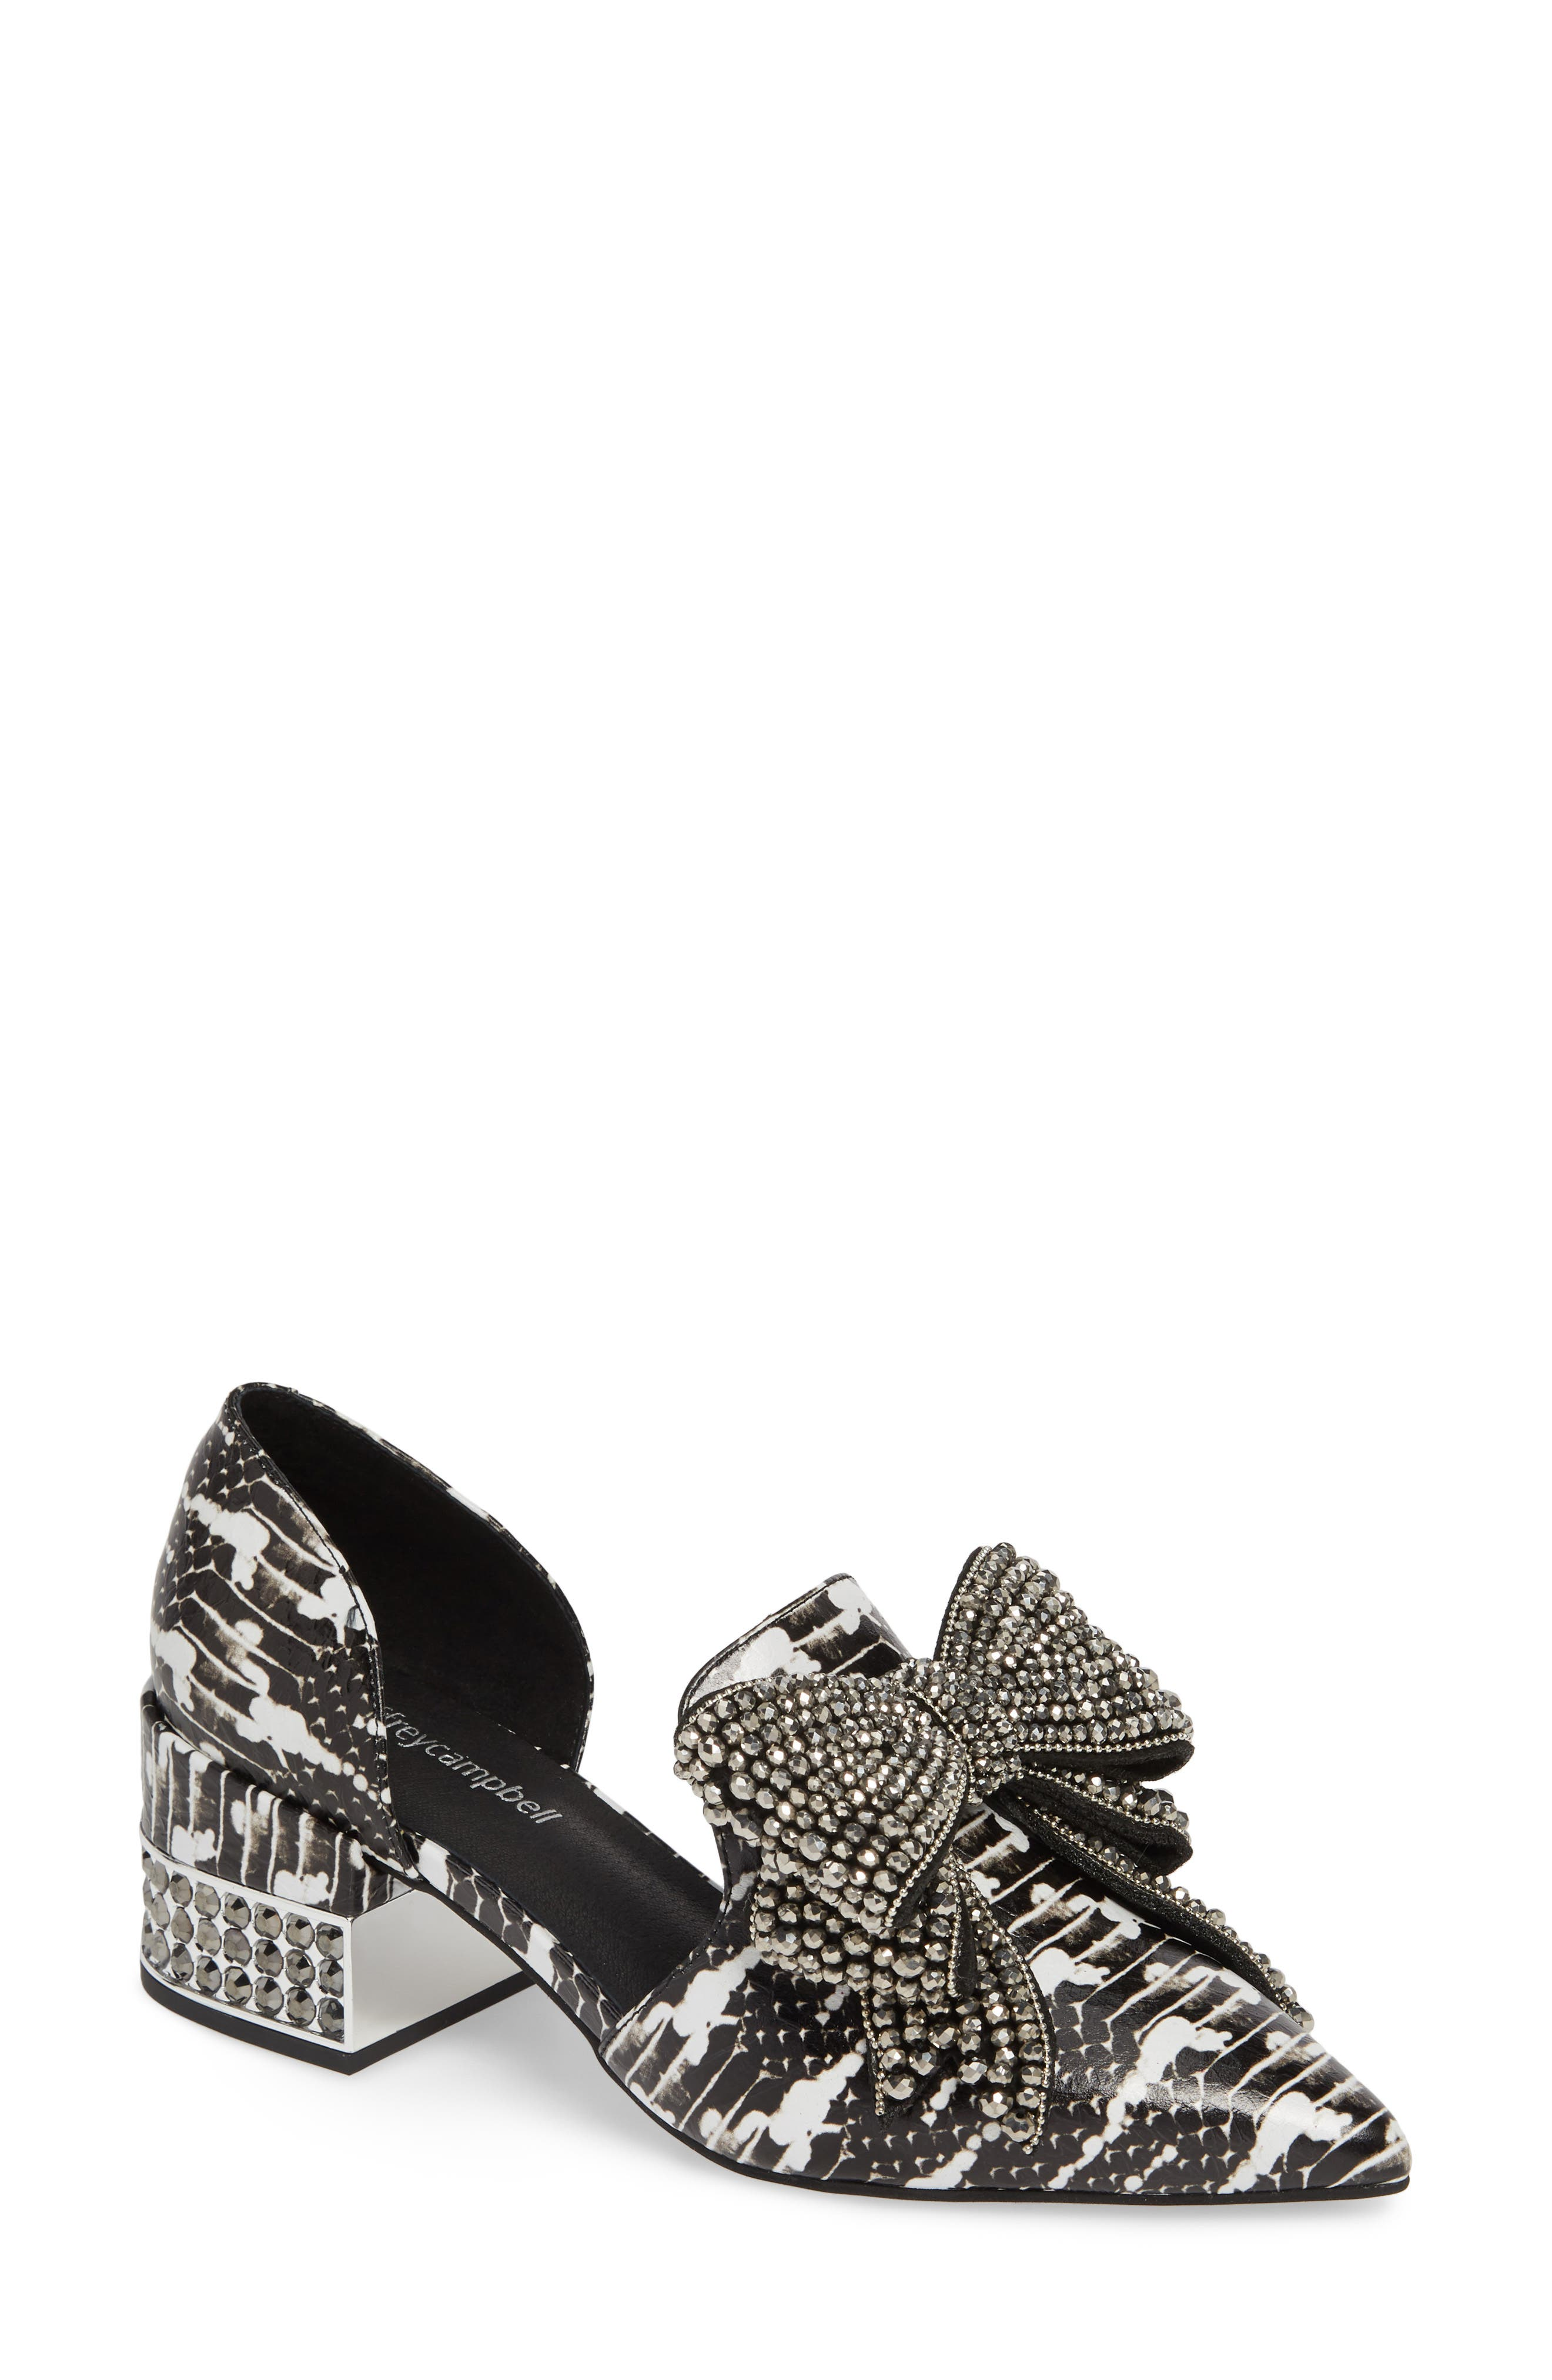 JEFFREY CAMPBELL Valenti Embellished Bow Loafer, Main, color, BLACK/WHITE/PEWTER